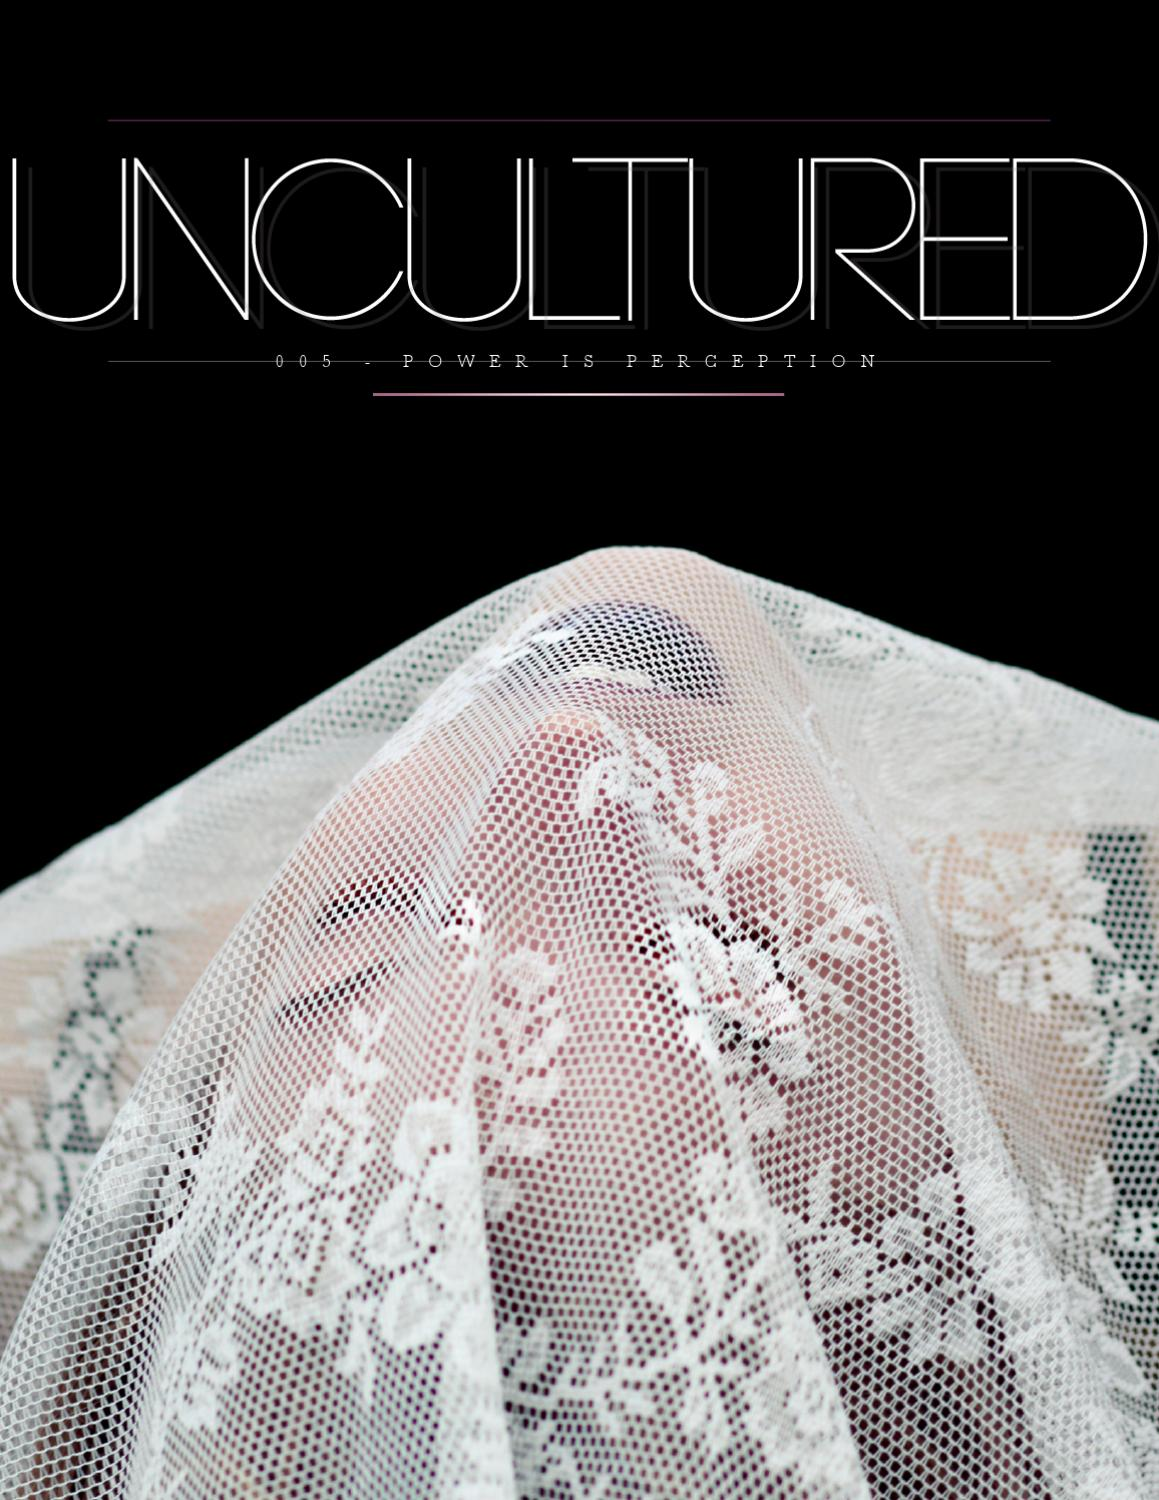 UNCULTURED 005 - POWER IS PERCEPTION by UNCULTURED - Issuu